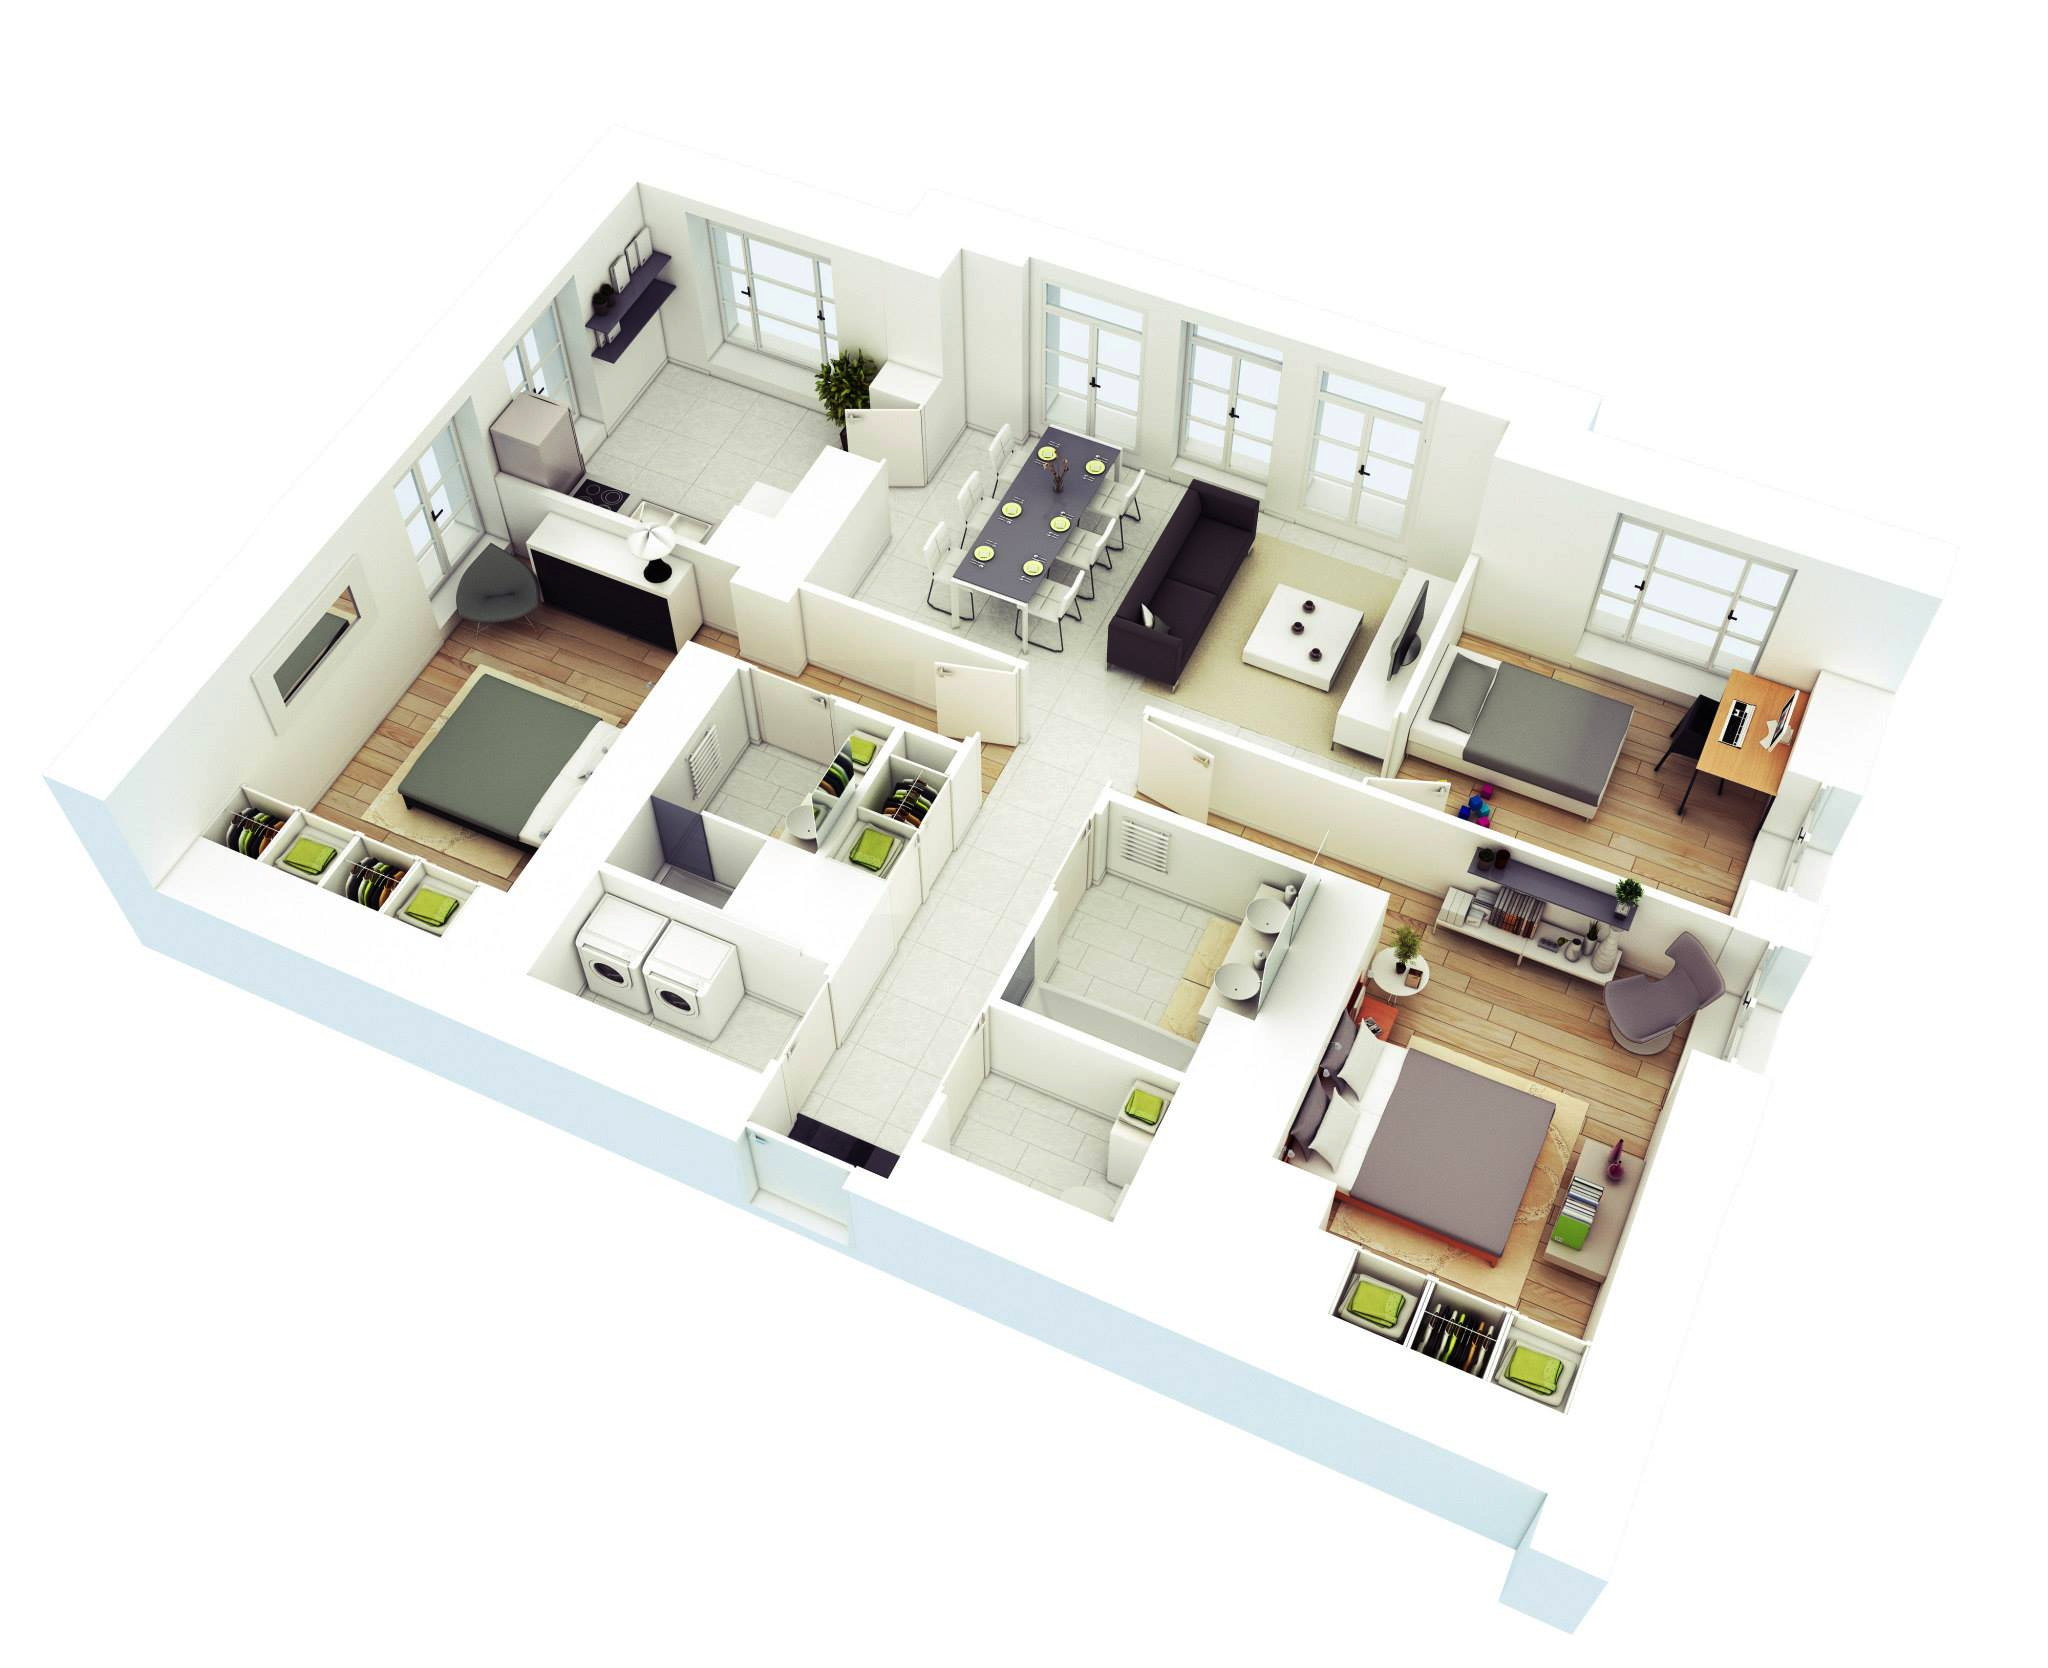 3 Bedroom House Floor Plan exclusive cool house plan id chp 39172 total living area 1150 sq 25 More 3 Bedroom 3d Floor Plans